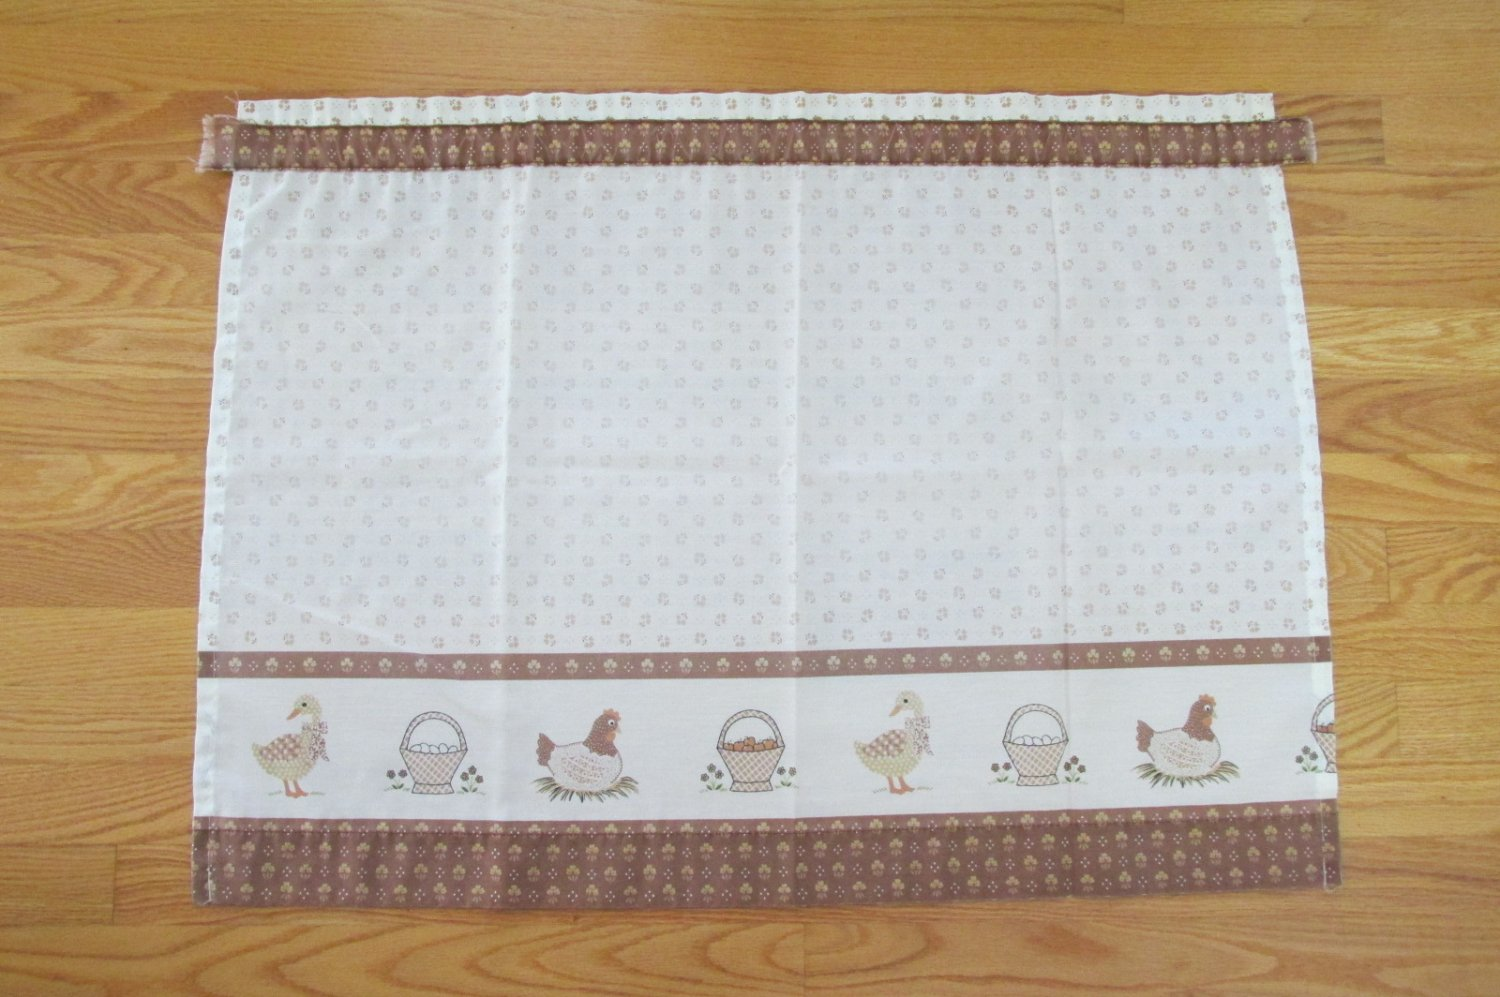 1970's VINTAGE CURTAIN IVORY & BROWN & TAN GOOSE & HEN BORDER PRINT QTY 4 PANELS